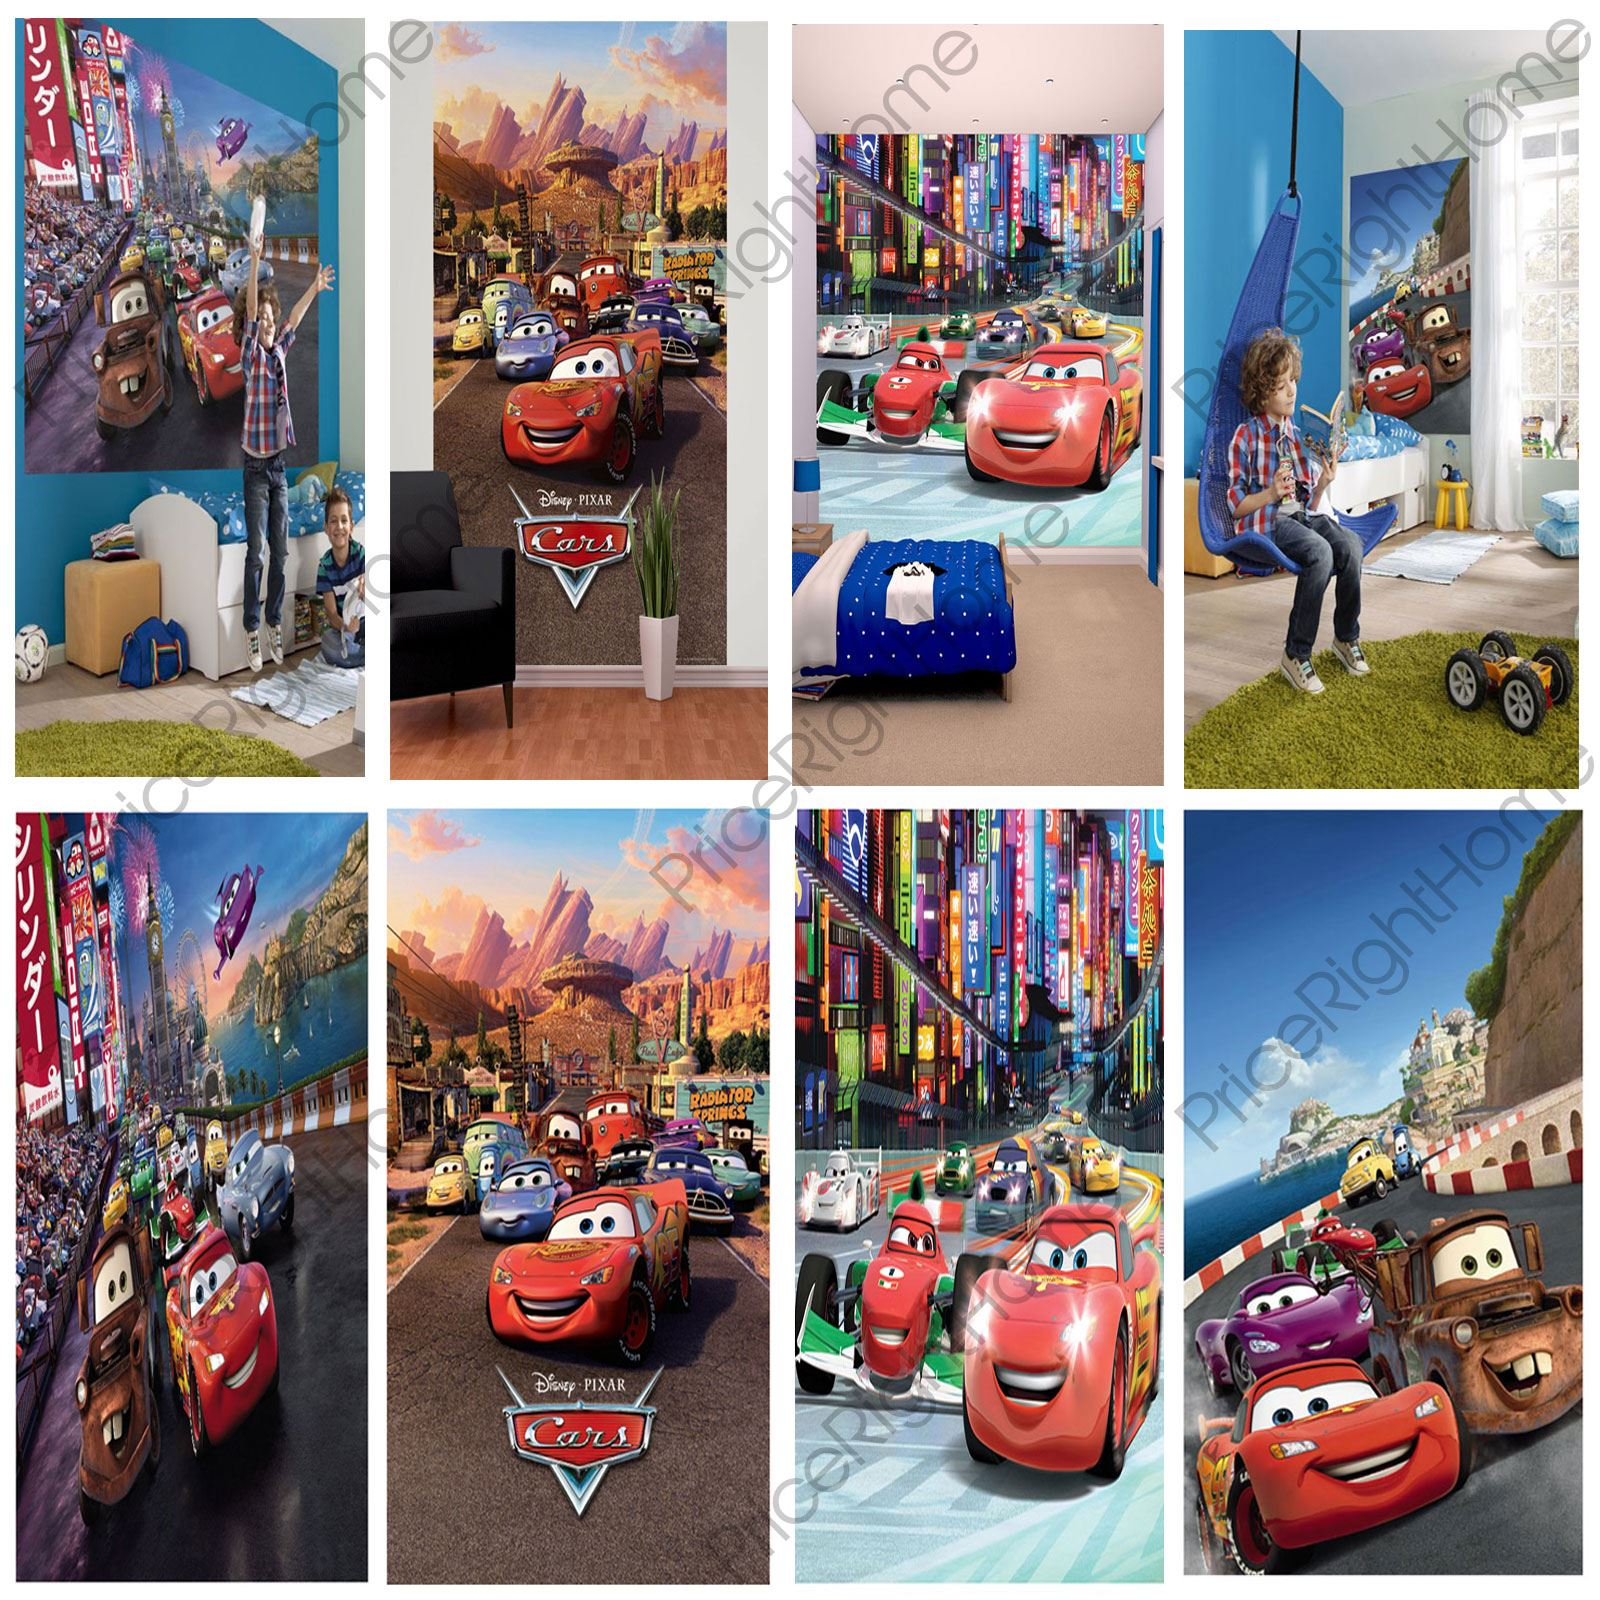 Disney cars wall murals 6 designs available kids bedroom for Disney cars mural uk